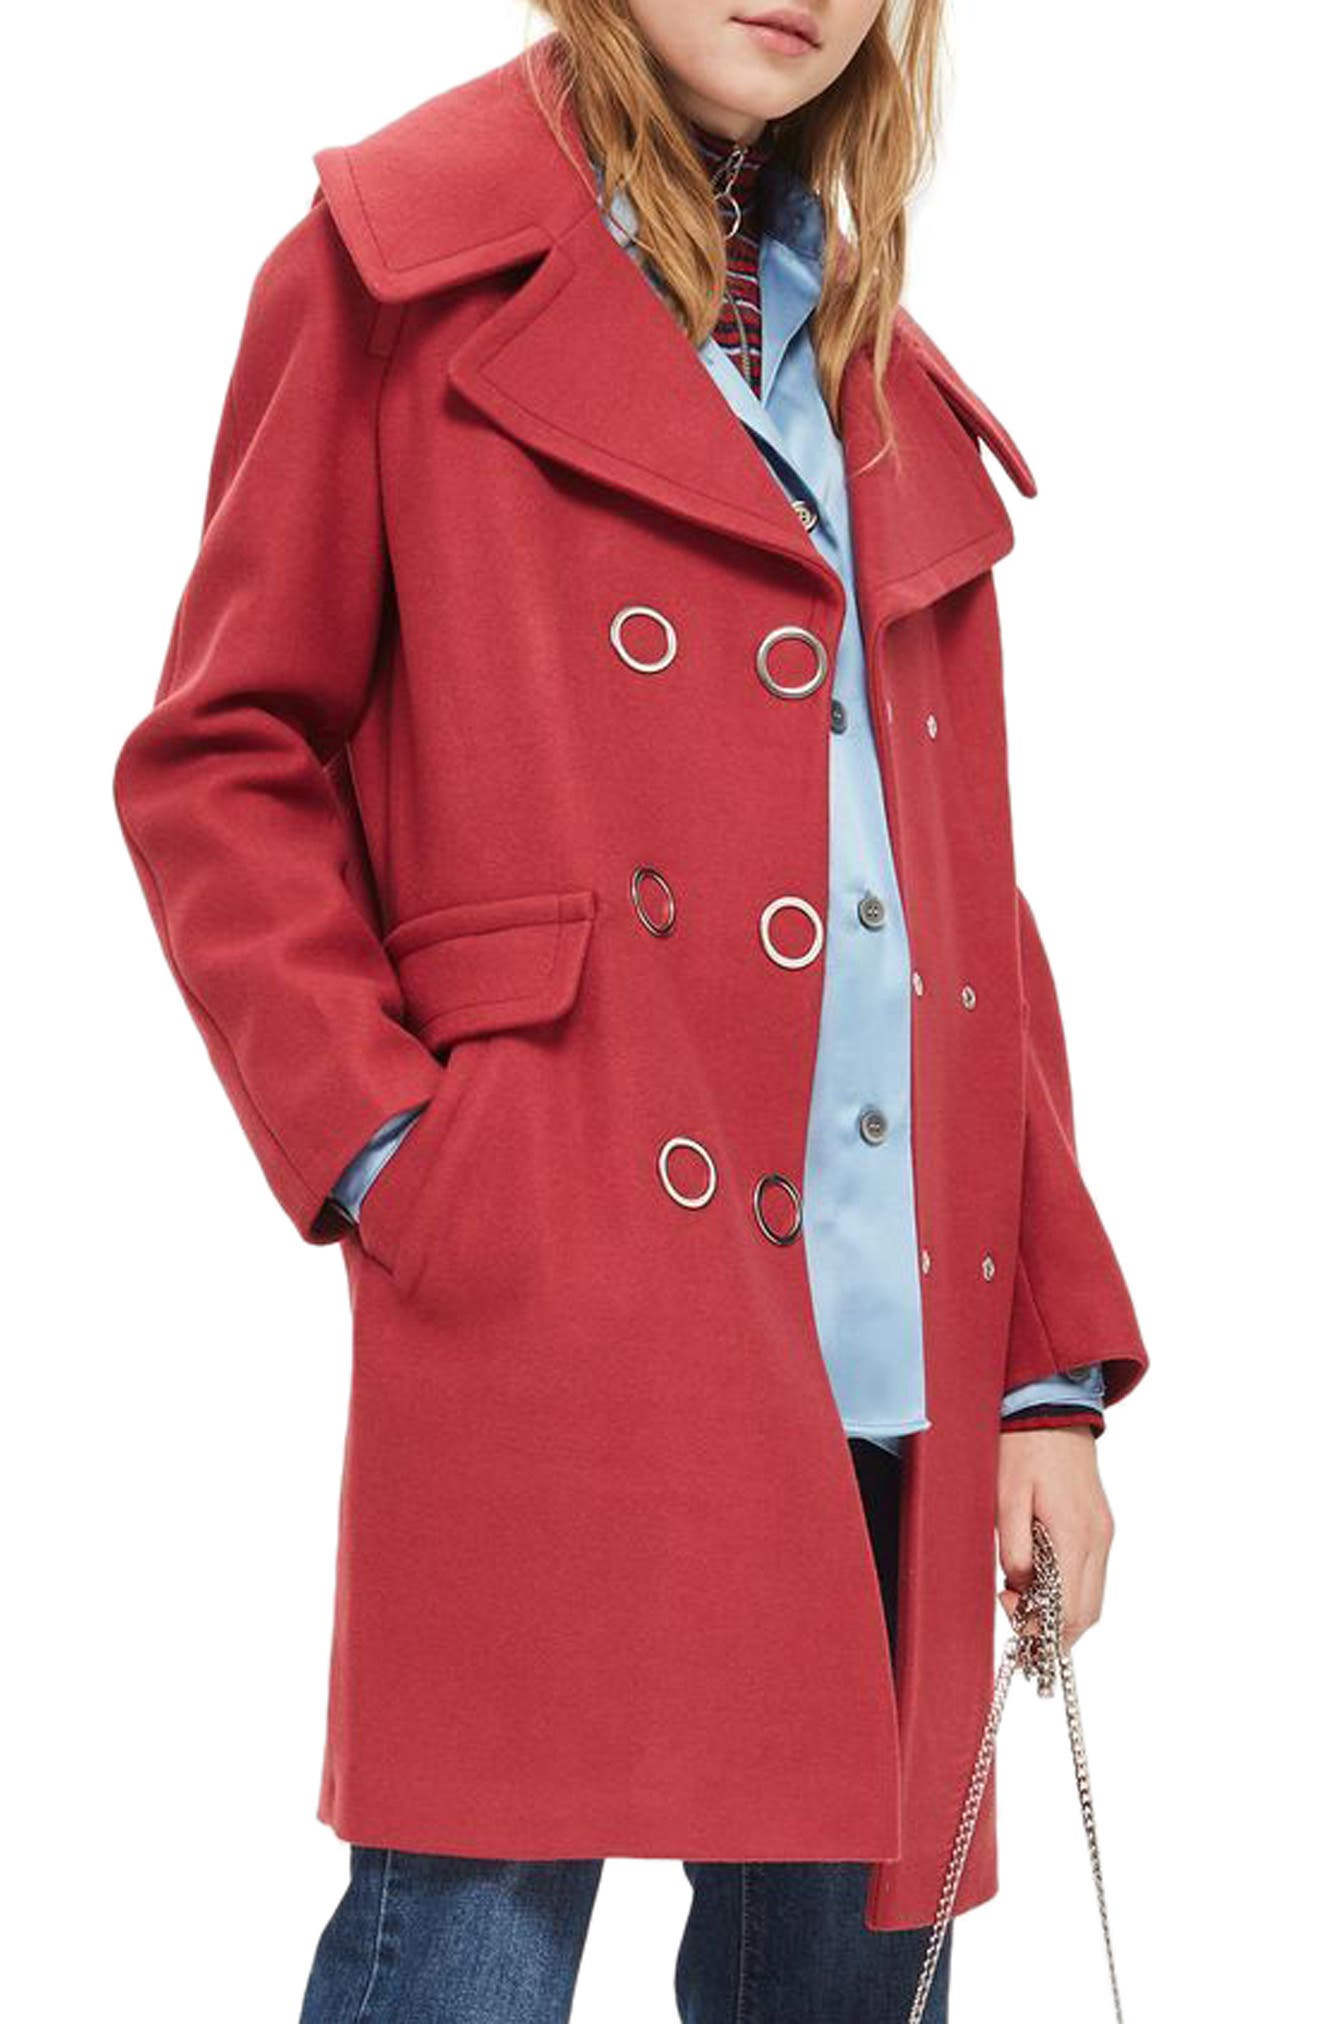 Ring Popper Cocoon Coat,                             Main thumbnail 1, color,                             Light Red